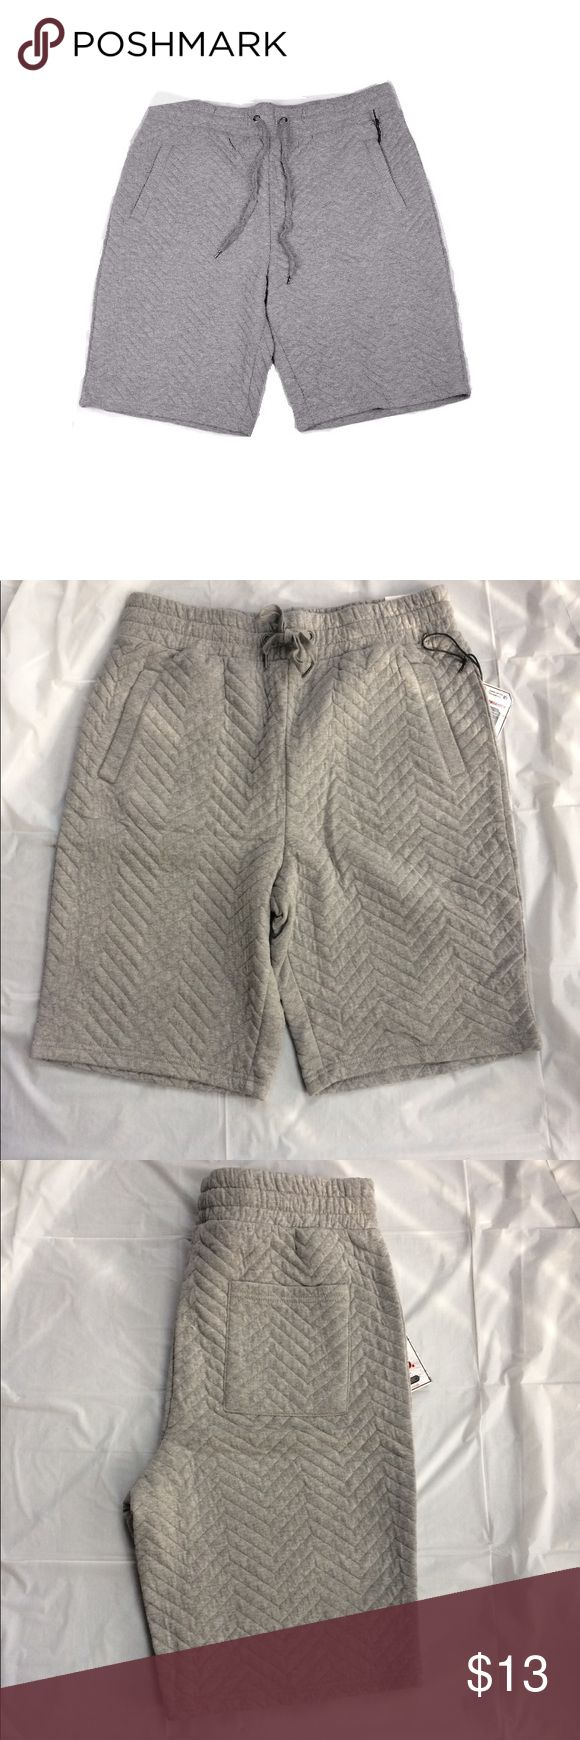 Men's quilted jogger sweatshorts Nwt Nwt men's quilted jogger sweat shorts,great for jogging,gym exercises ,sleeping and lounging ,soft cotton poly blend ,waistband for better fit comfort ,any questions just ask,thank you for reading,this listing is for grey color,,pic on black shorts is same style but used as model pic,,price is firm but you can bundle for a better price,thank u Shorts Athletic